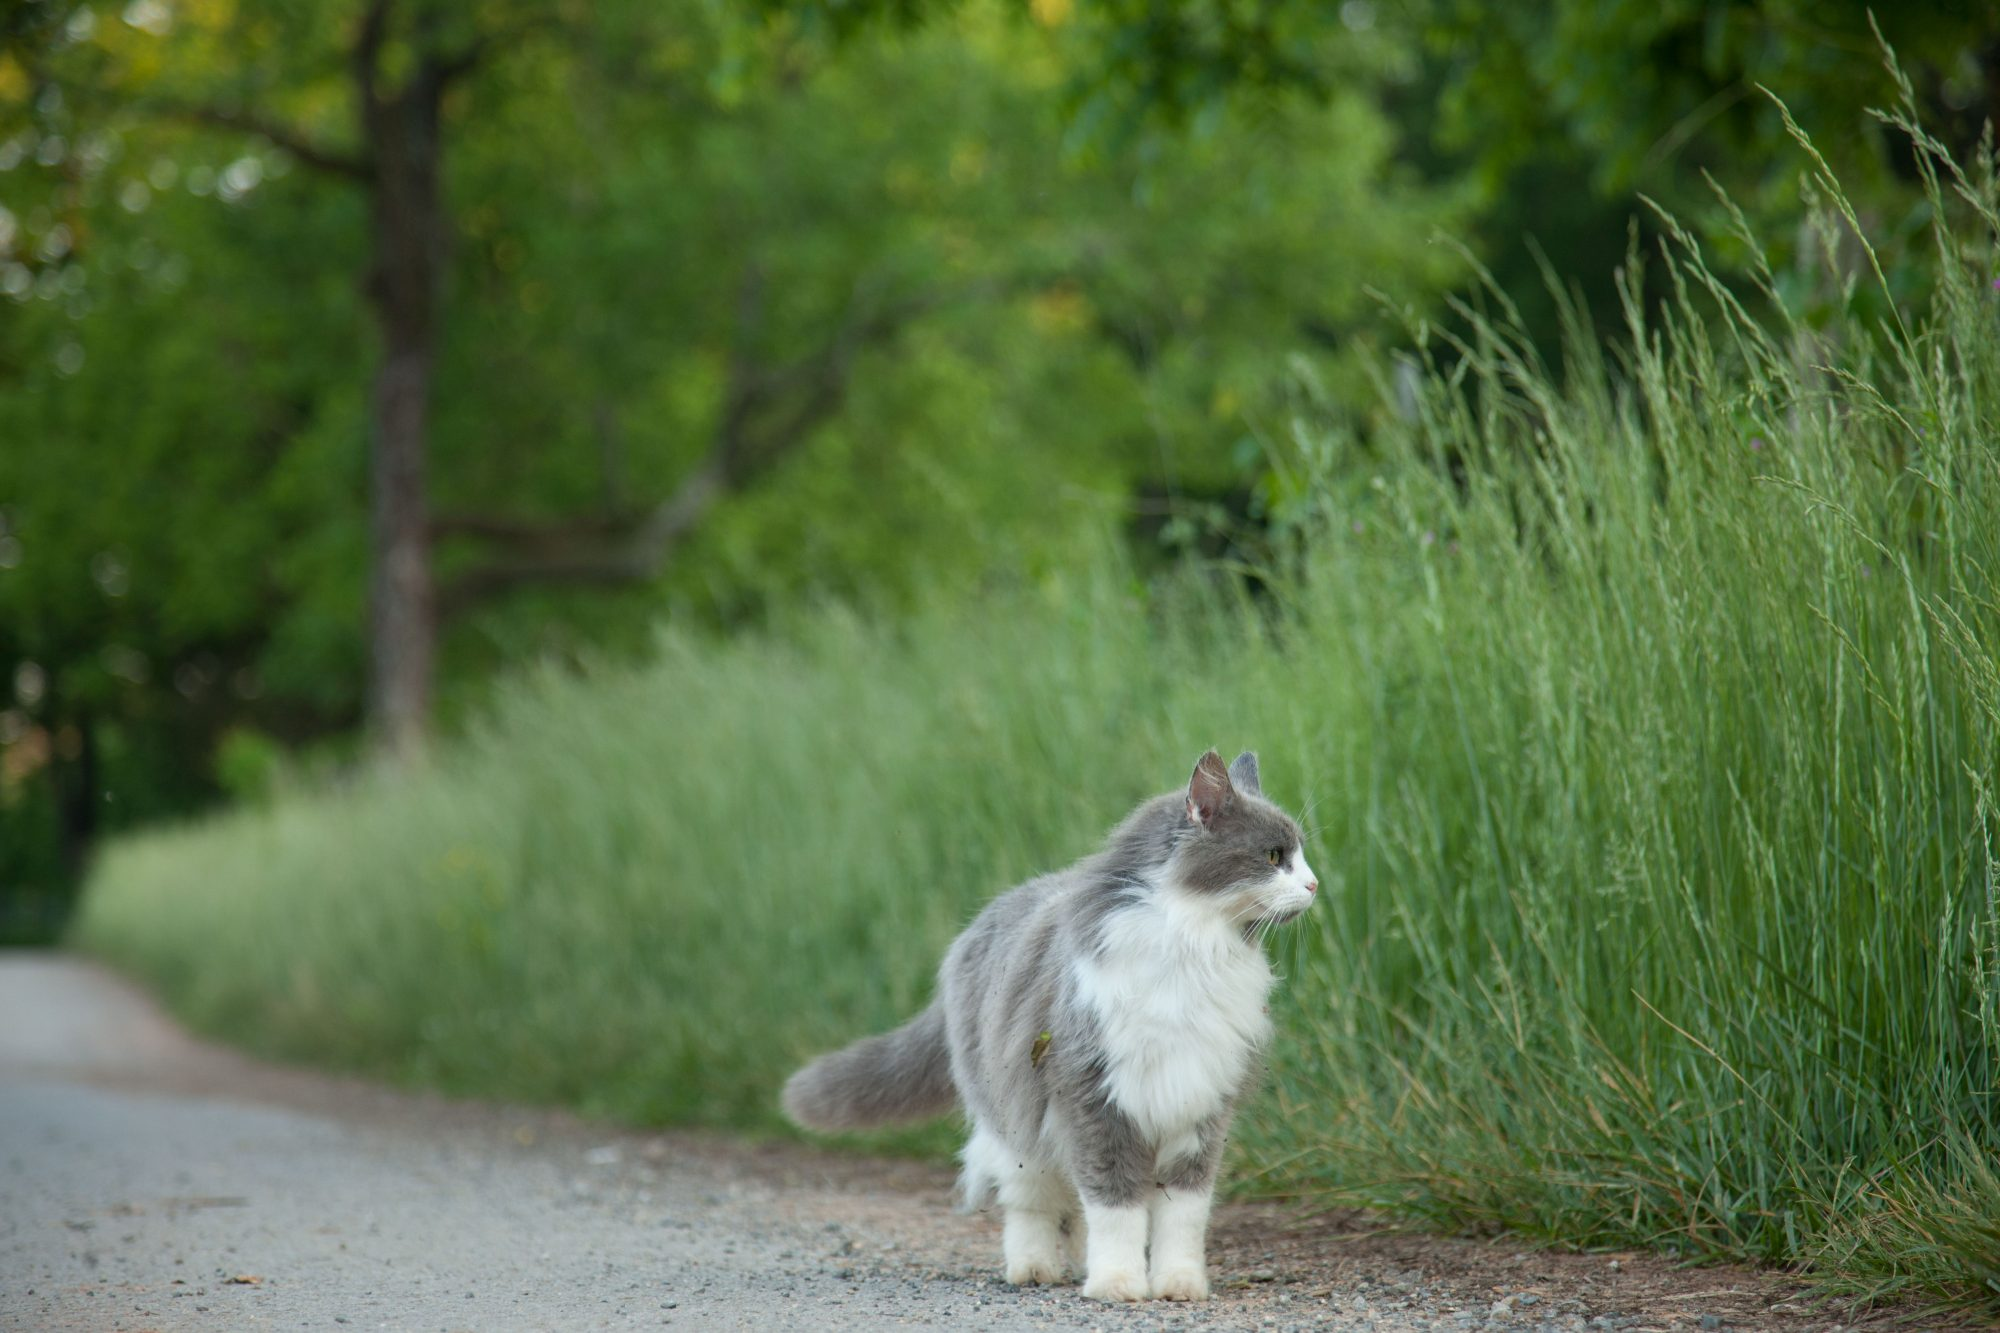 Gray and White Cat Walking Outside